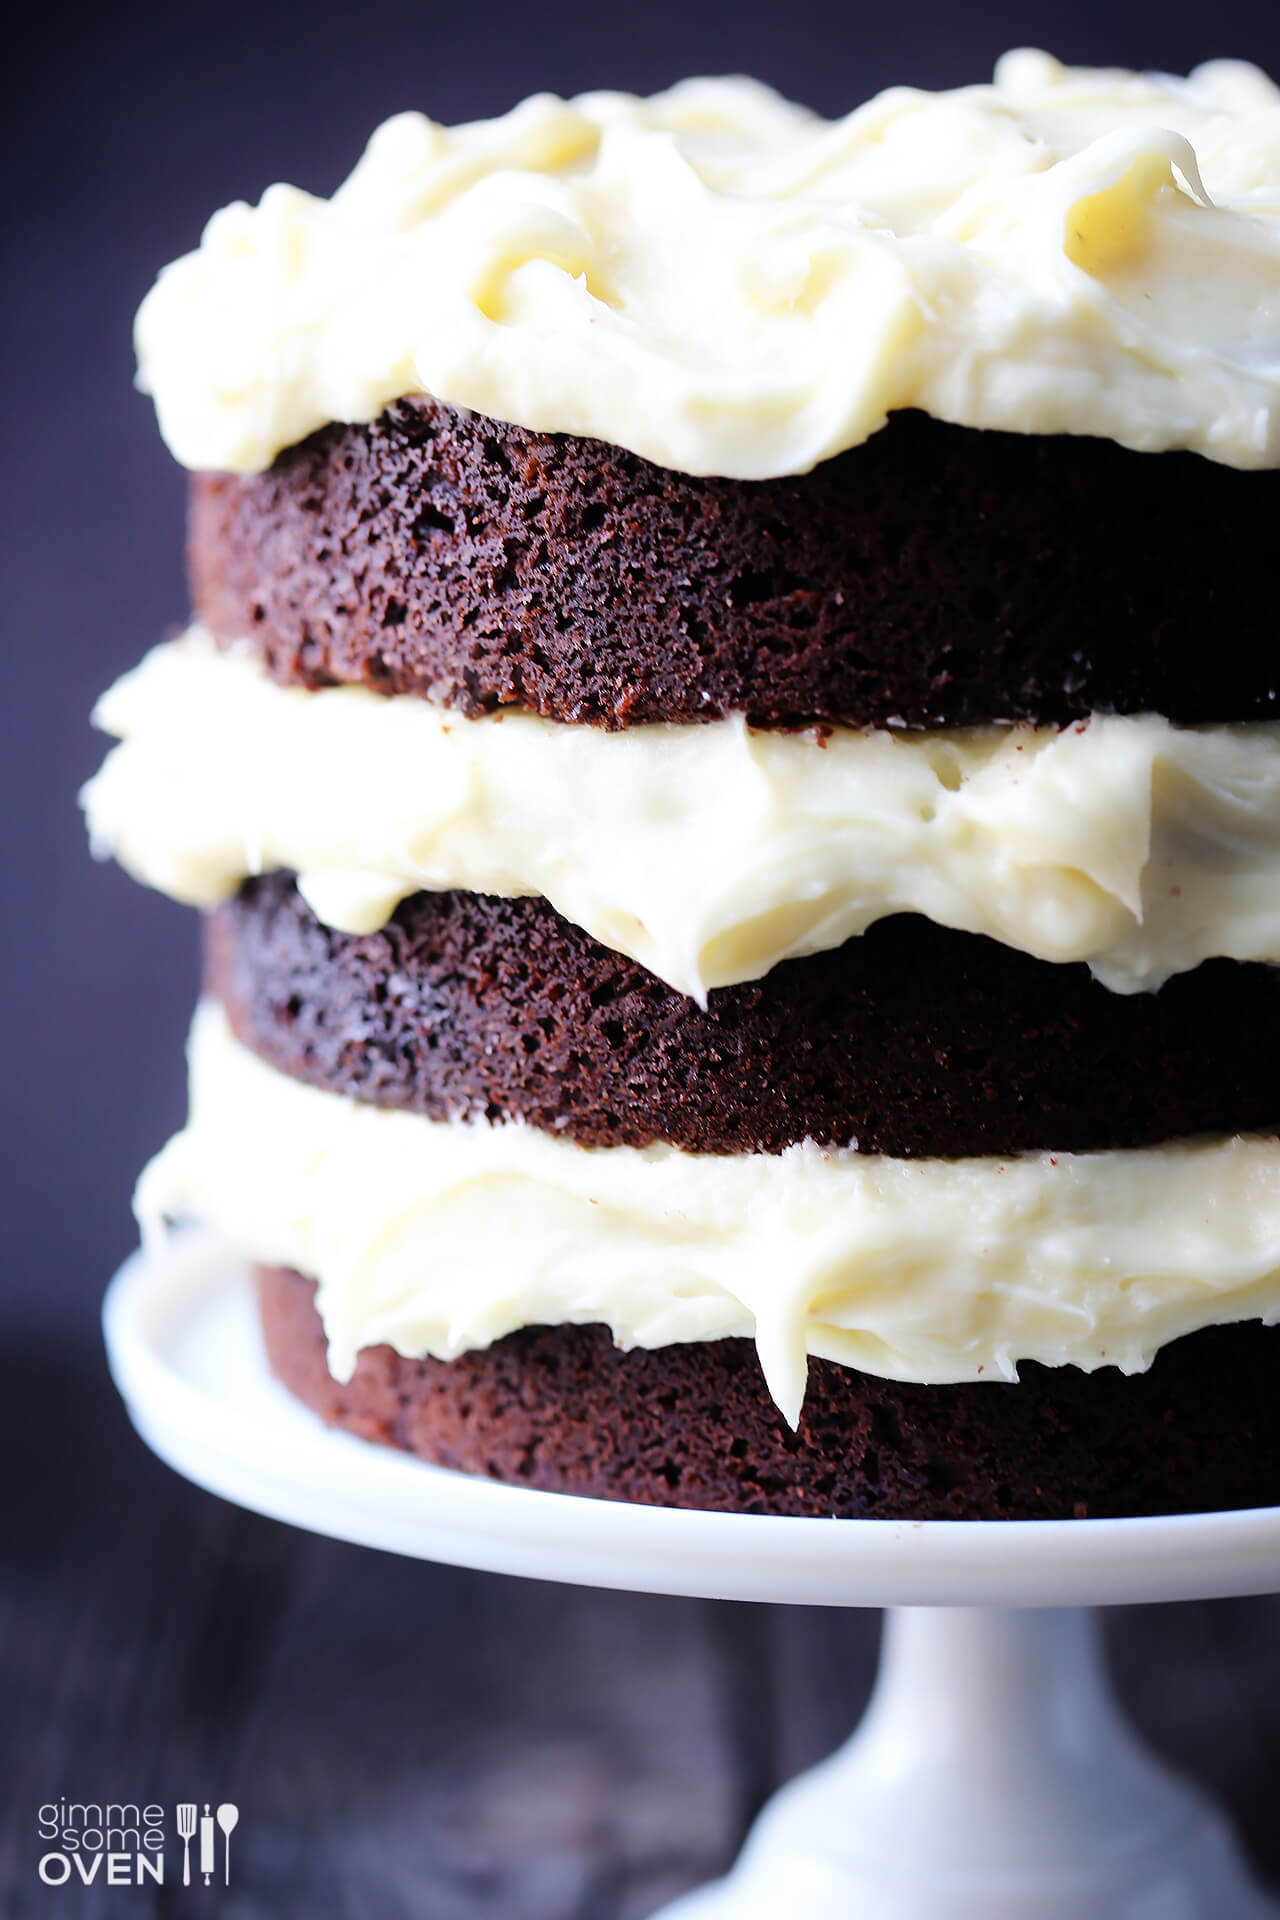 Cake With Cream Frosting : Guinness Chocolate Cake with Cream Cheese Frosting Gimme ...